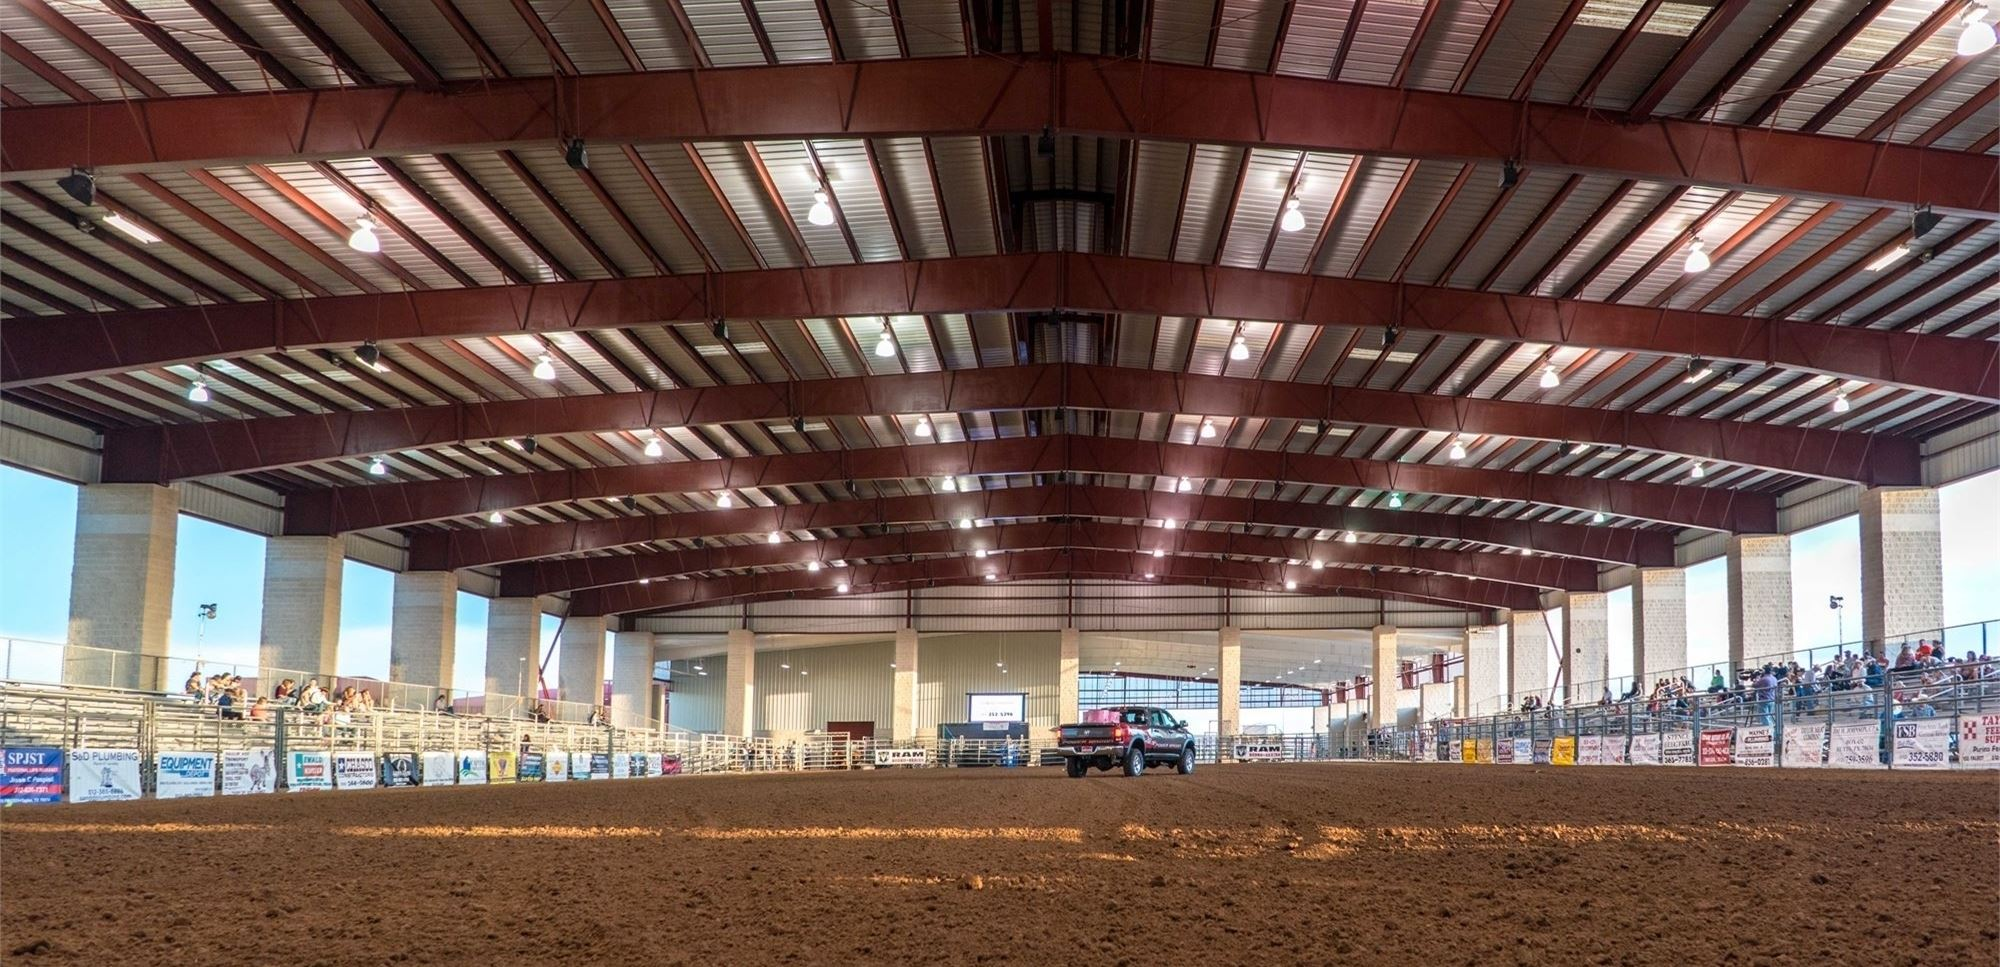 The main arena looking south towards the Main Expo Hall. Black truck in the distance of the arena setting up barrels for the Taylor Rodeo.